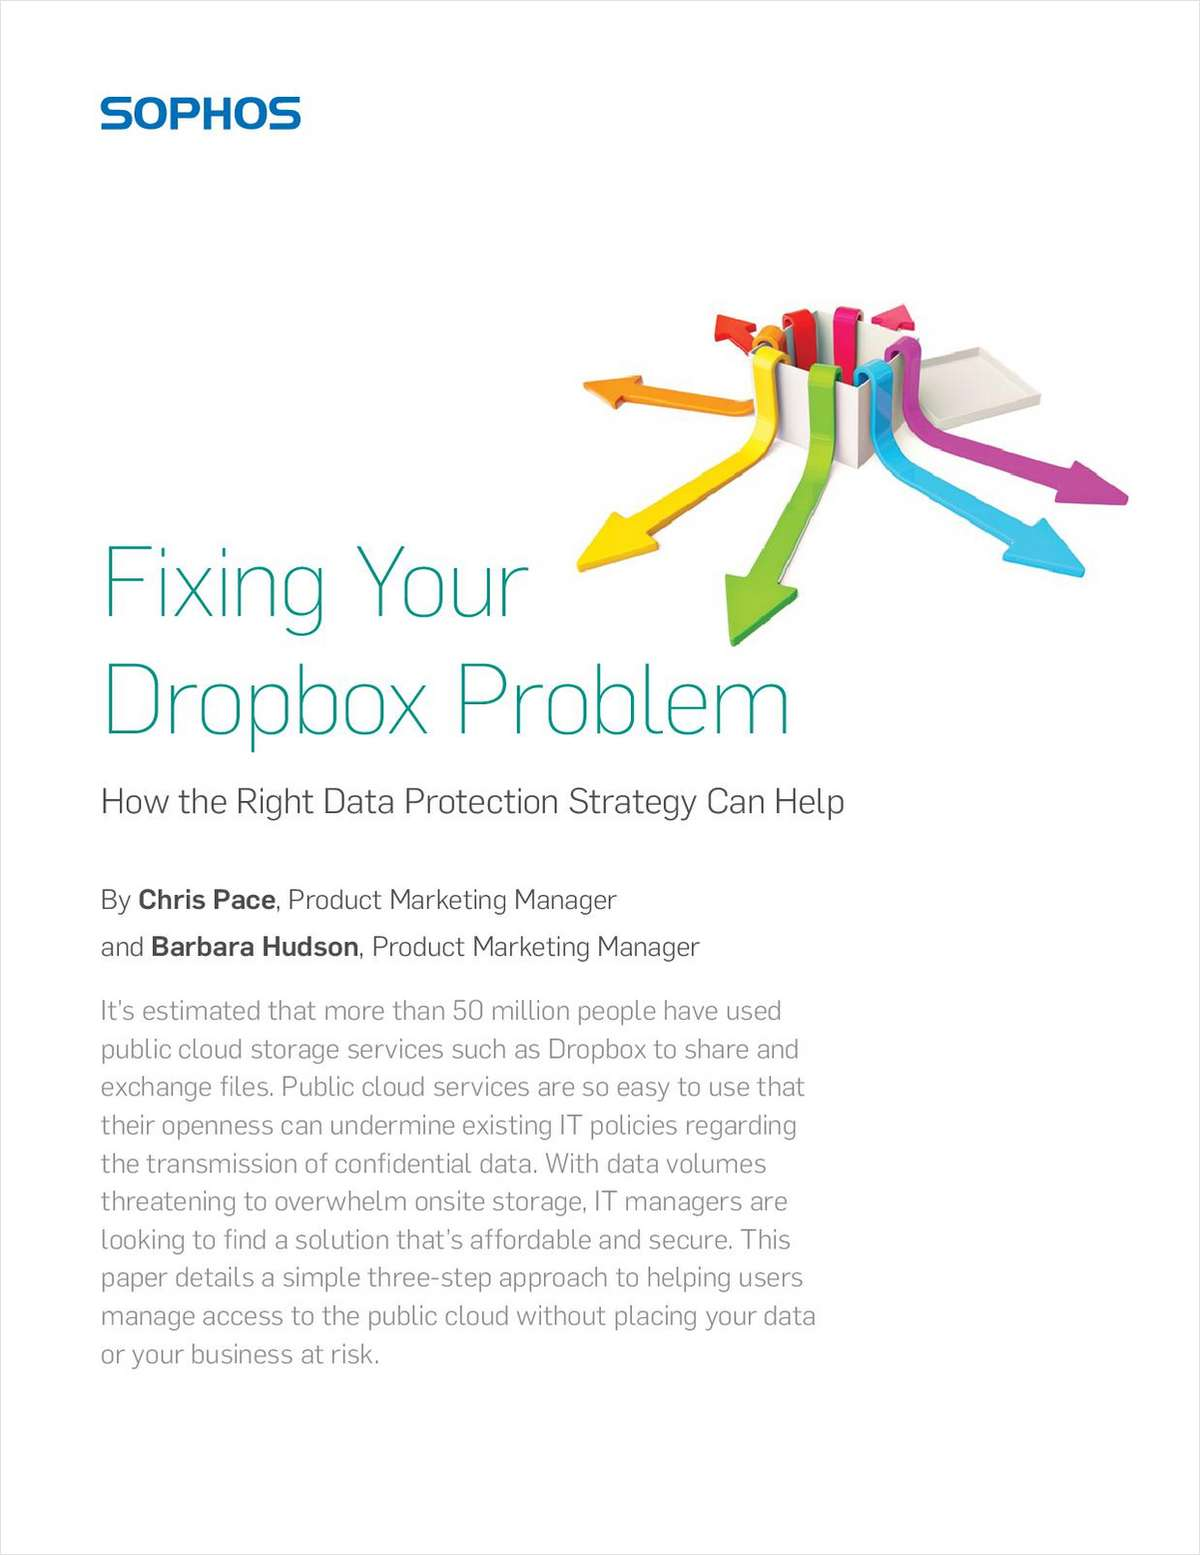 Fixing Your Dropbox Problem